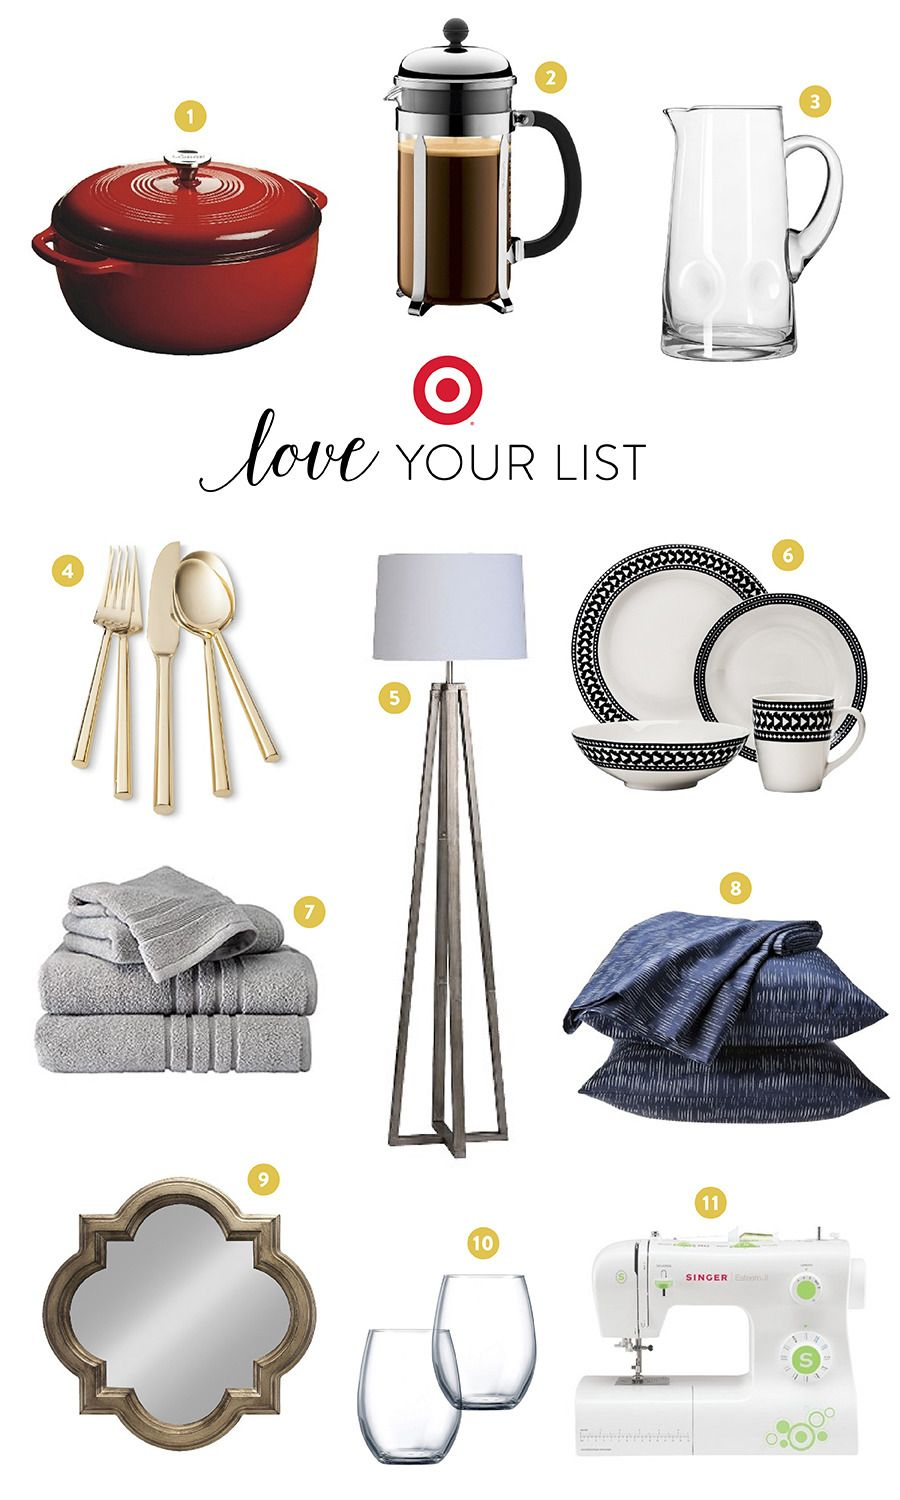 Love Your List with Target Wedding registry list